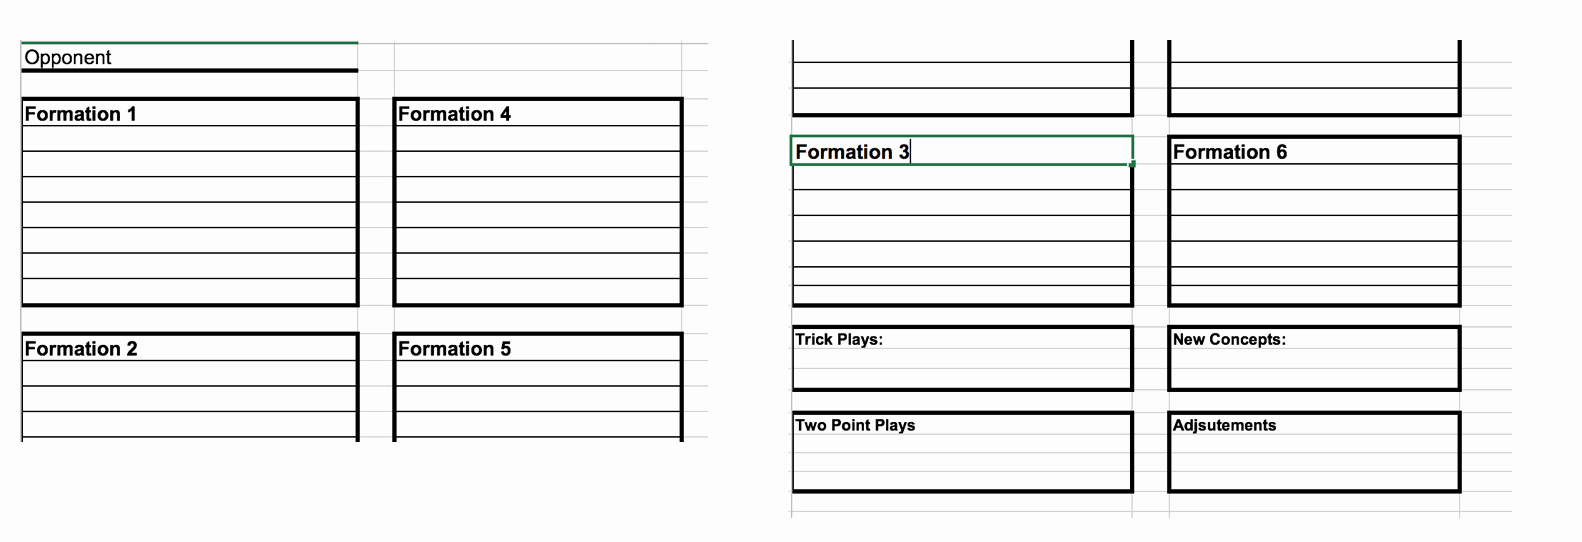 Football Play Call Sheet Template Excel Inspirational Coach Vint Developing An Fensive Game Plan and Call